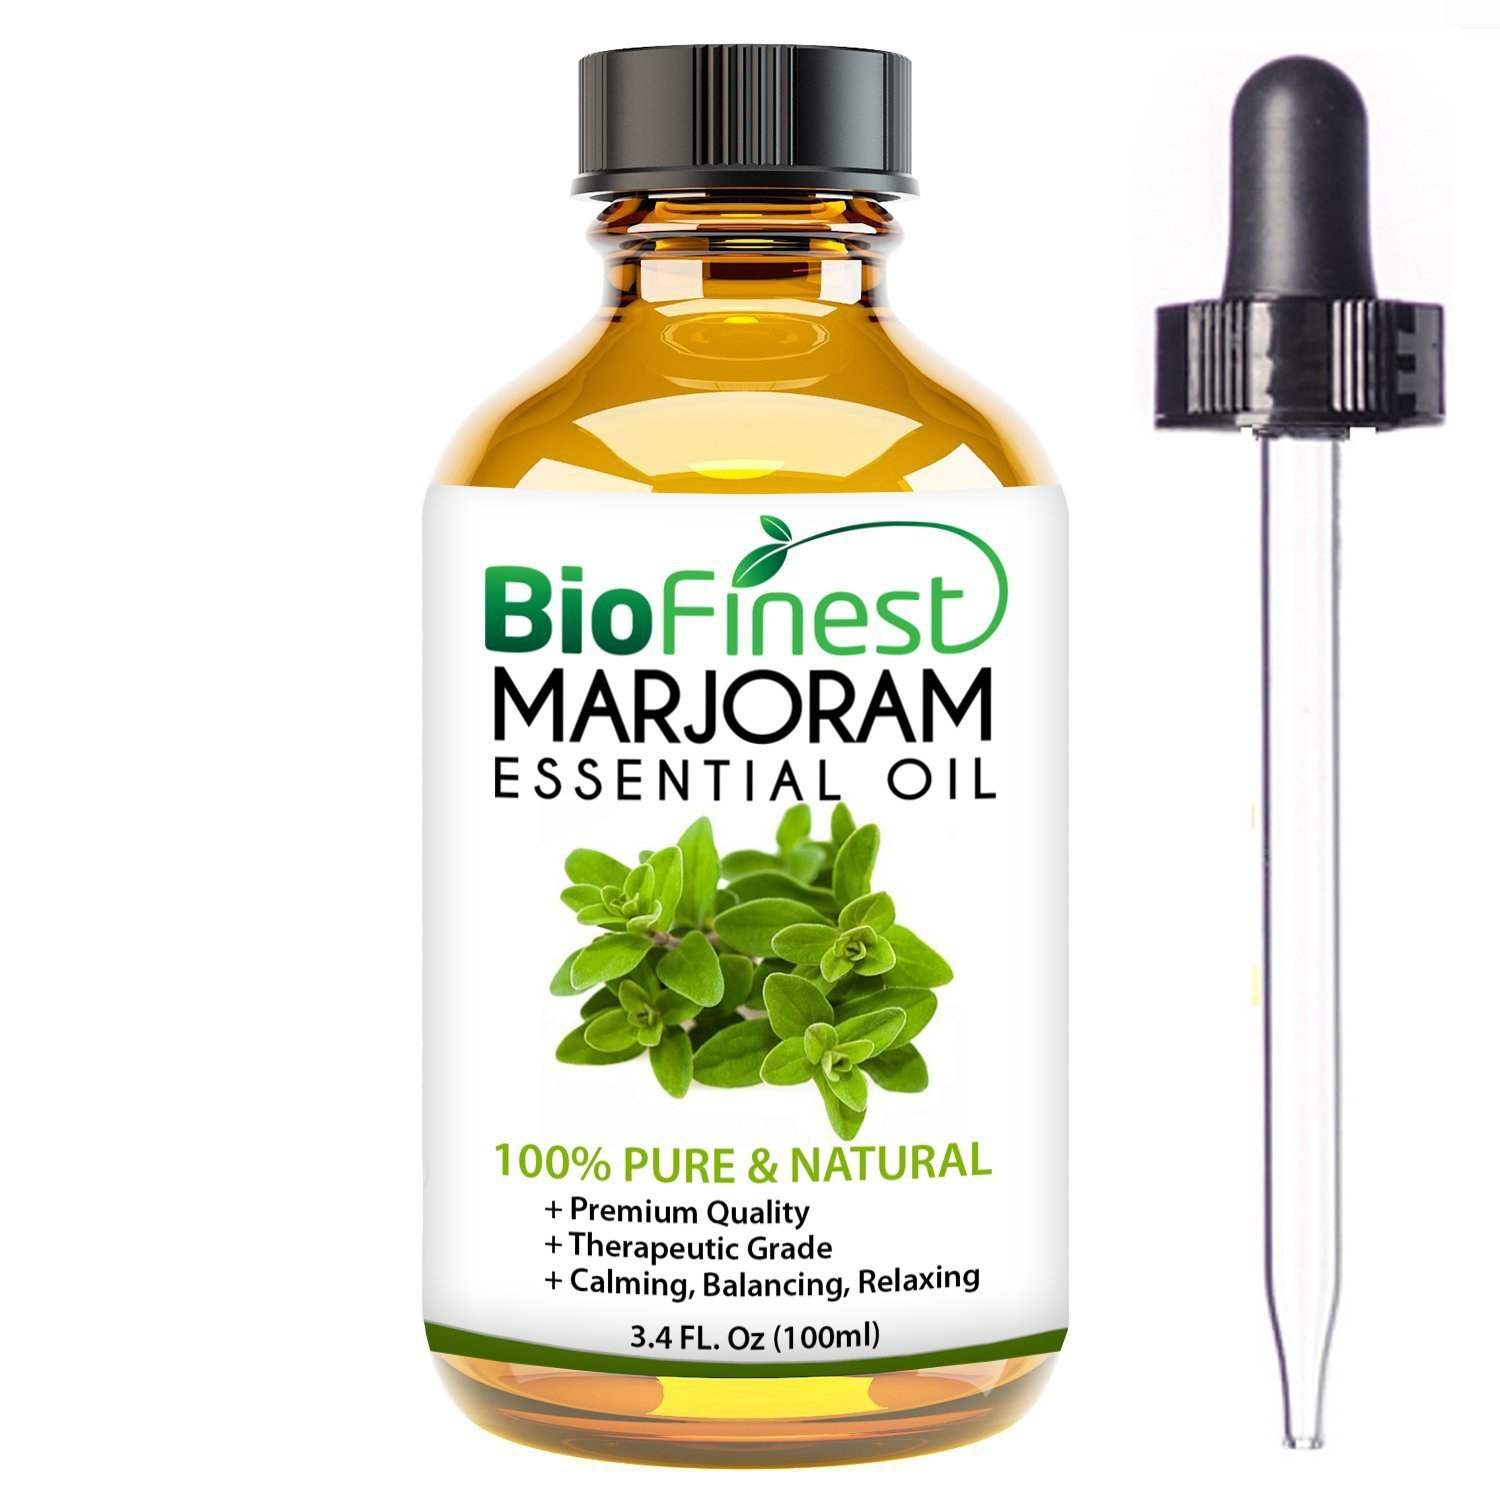 BioFinest Marjoram Oil - 100% Pure Marjoram Essential Oil - Premium Organic - Therapeutic Grade - Best For Aromatherapy - Antiseptic - Ease Stress/Anxiety - FREE E-Book and Dropper (100ml)